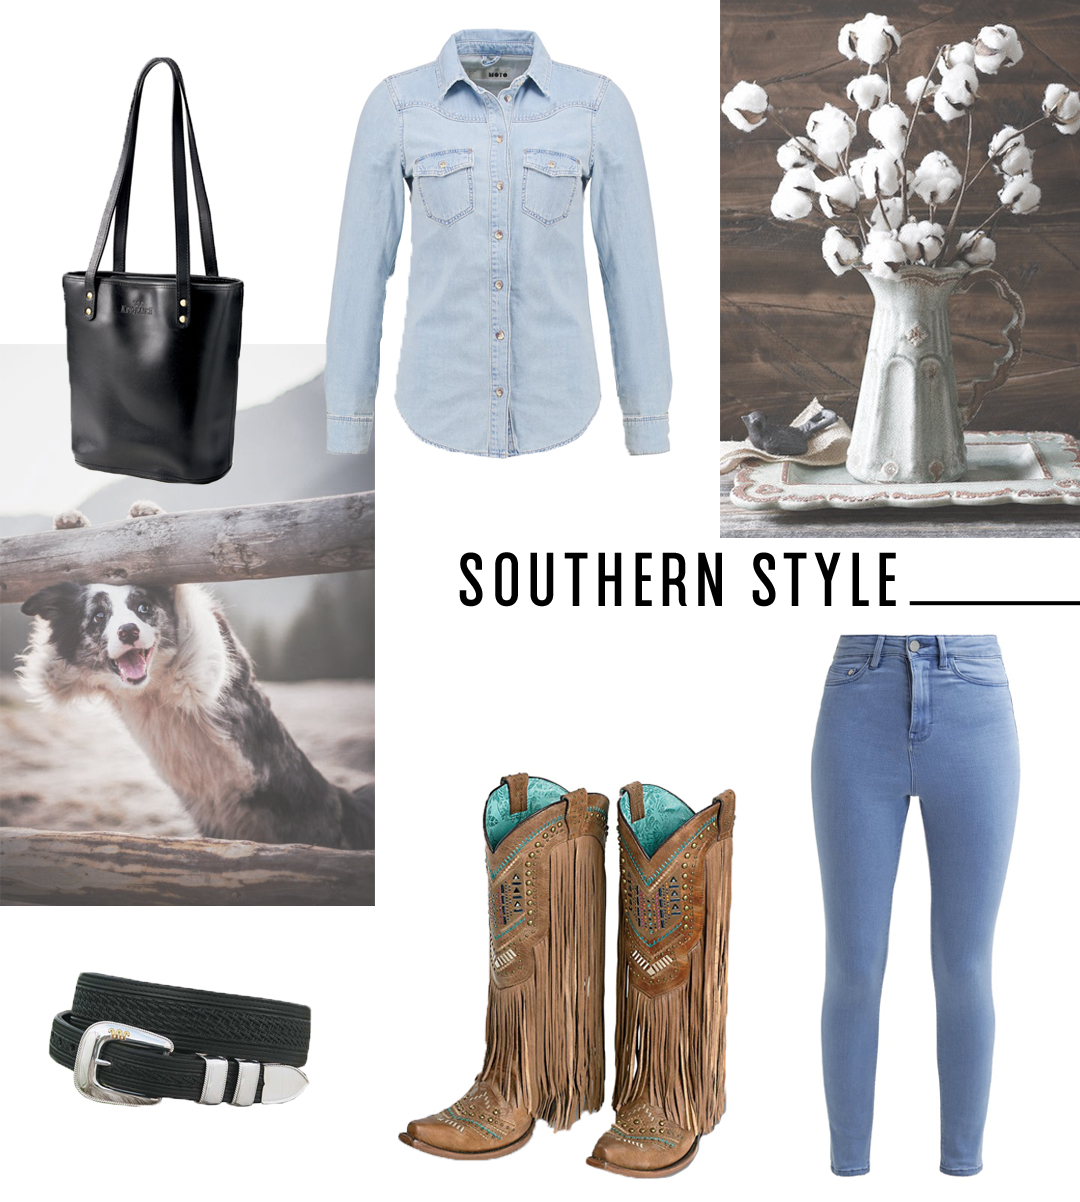 King ranch saddle shop, southern outfit, style, old west, western, boots, belgian blogger, belgische mode blogger